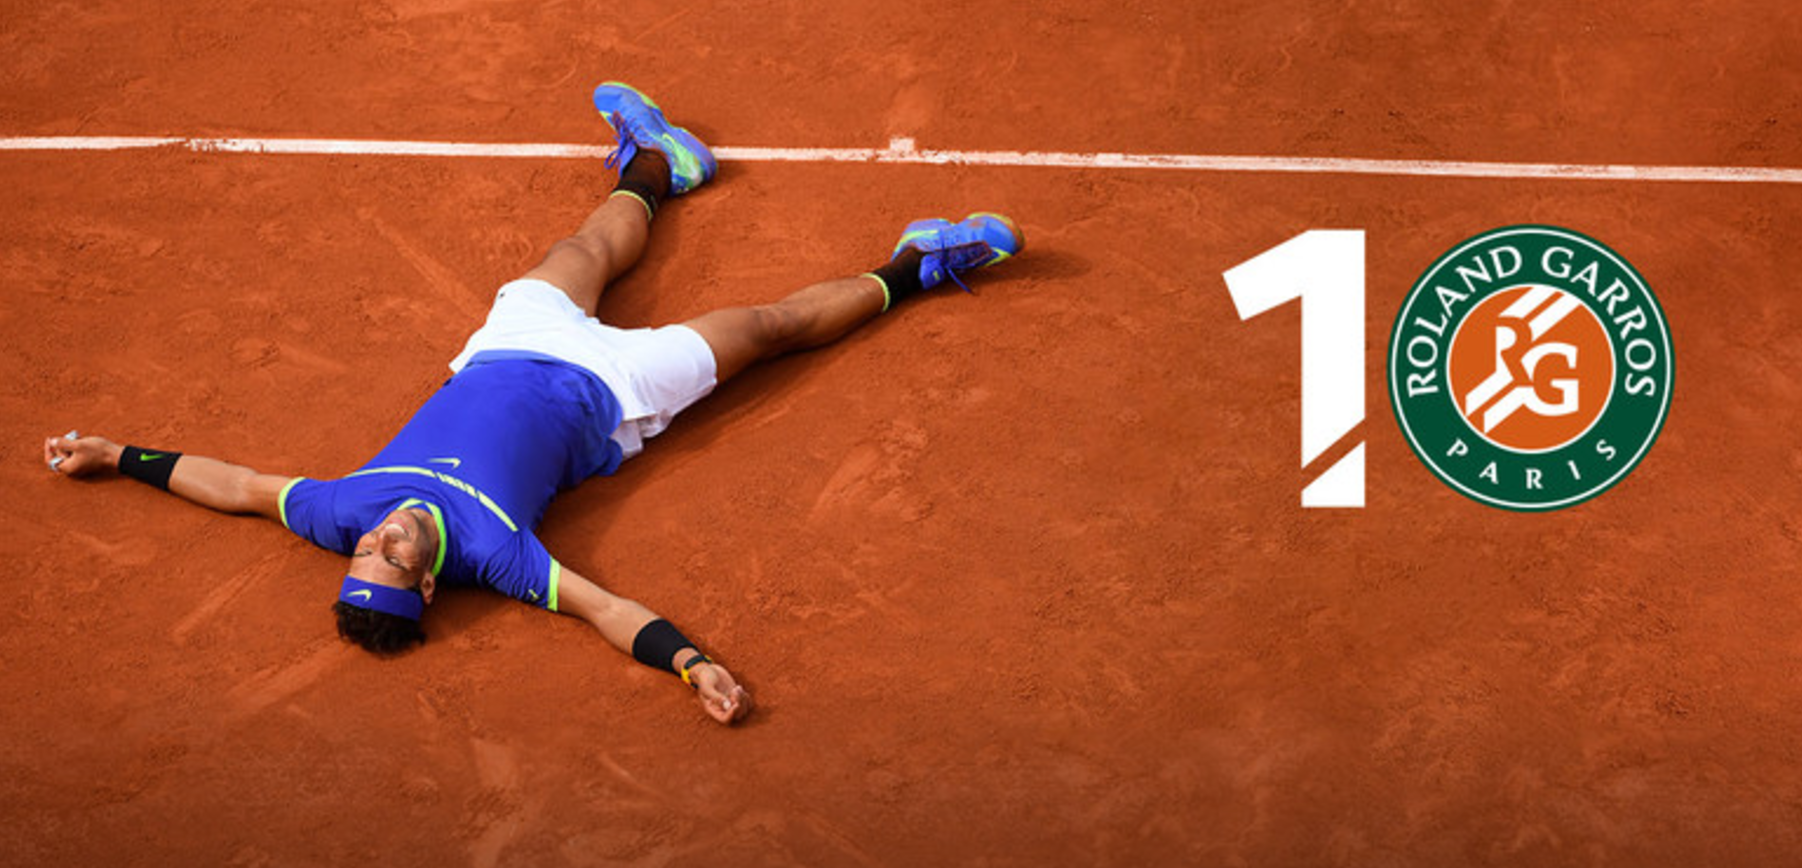 Rafa on Clay at Roland Garros